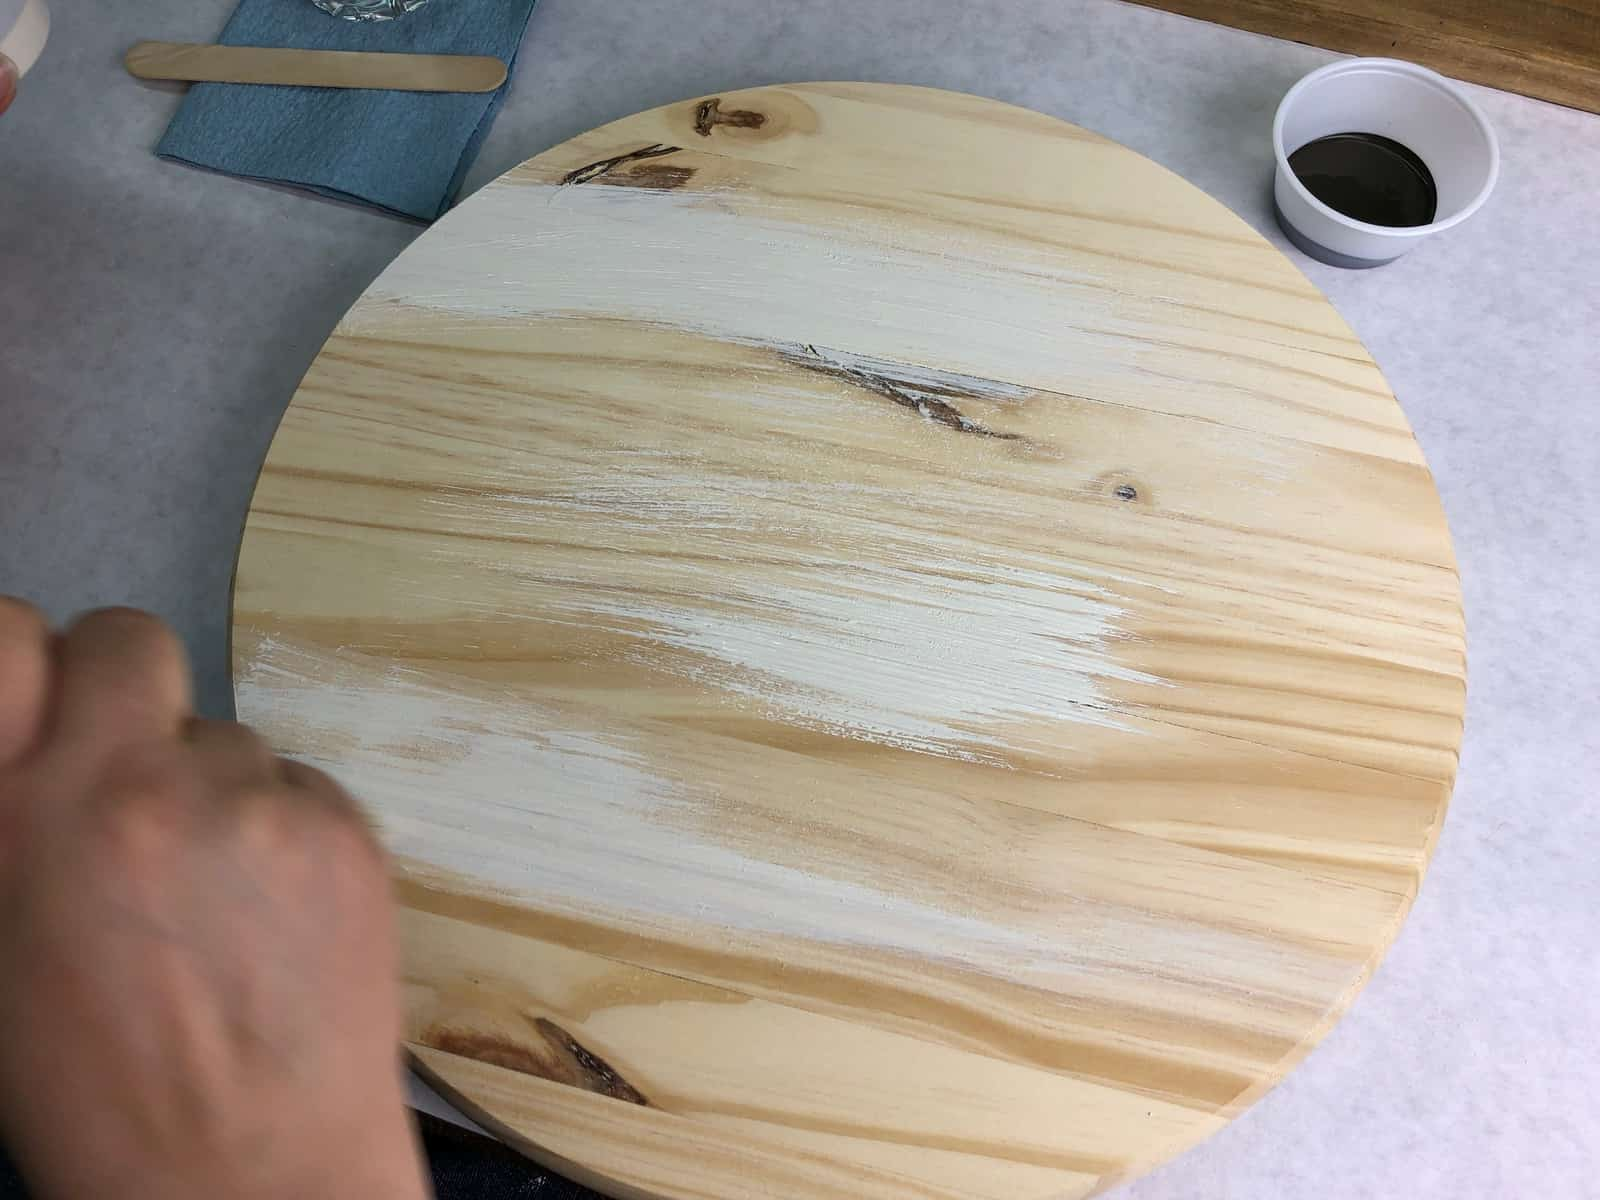 DIY Rustic Wooden Serving Tray Craft Project Tutorial with furniture paint from Country Chic Paint